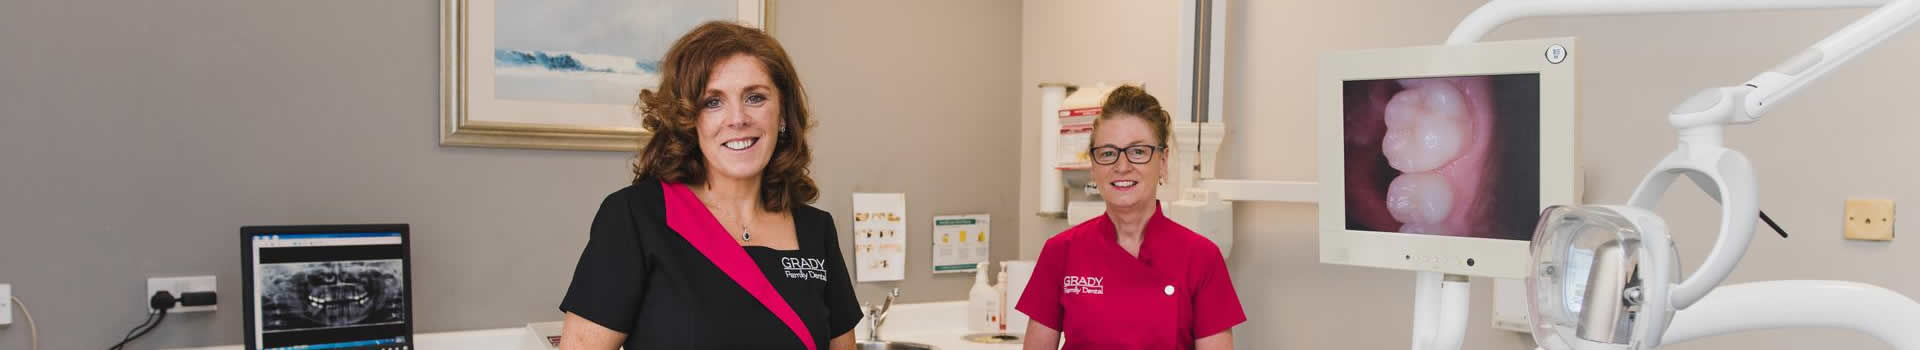 Cosmetic- Miriam Grady Dental Practice